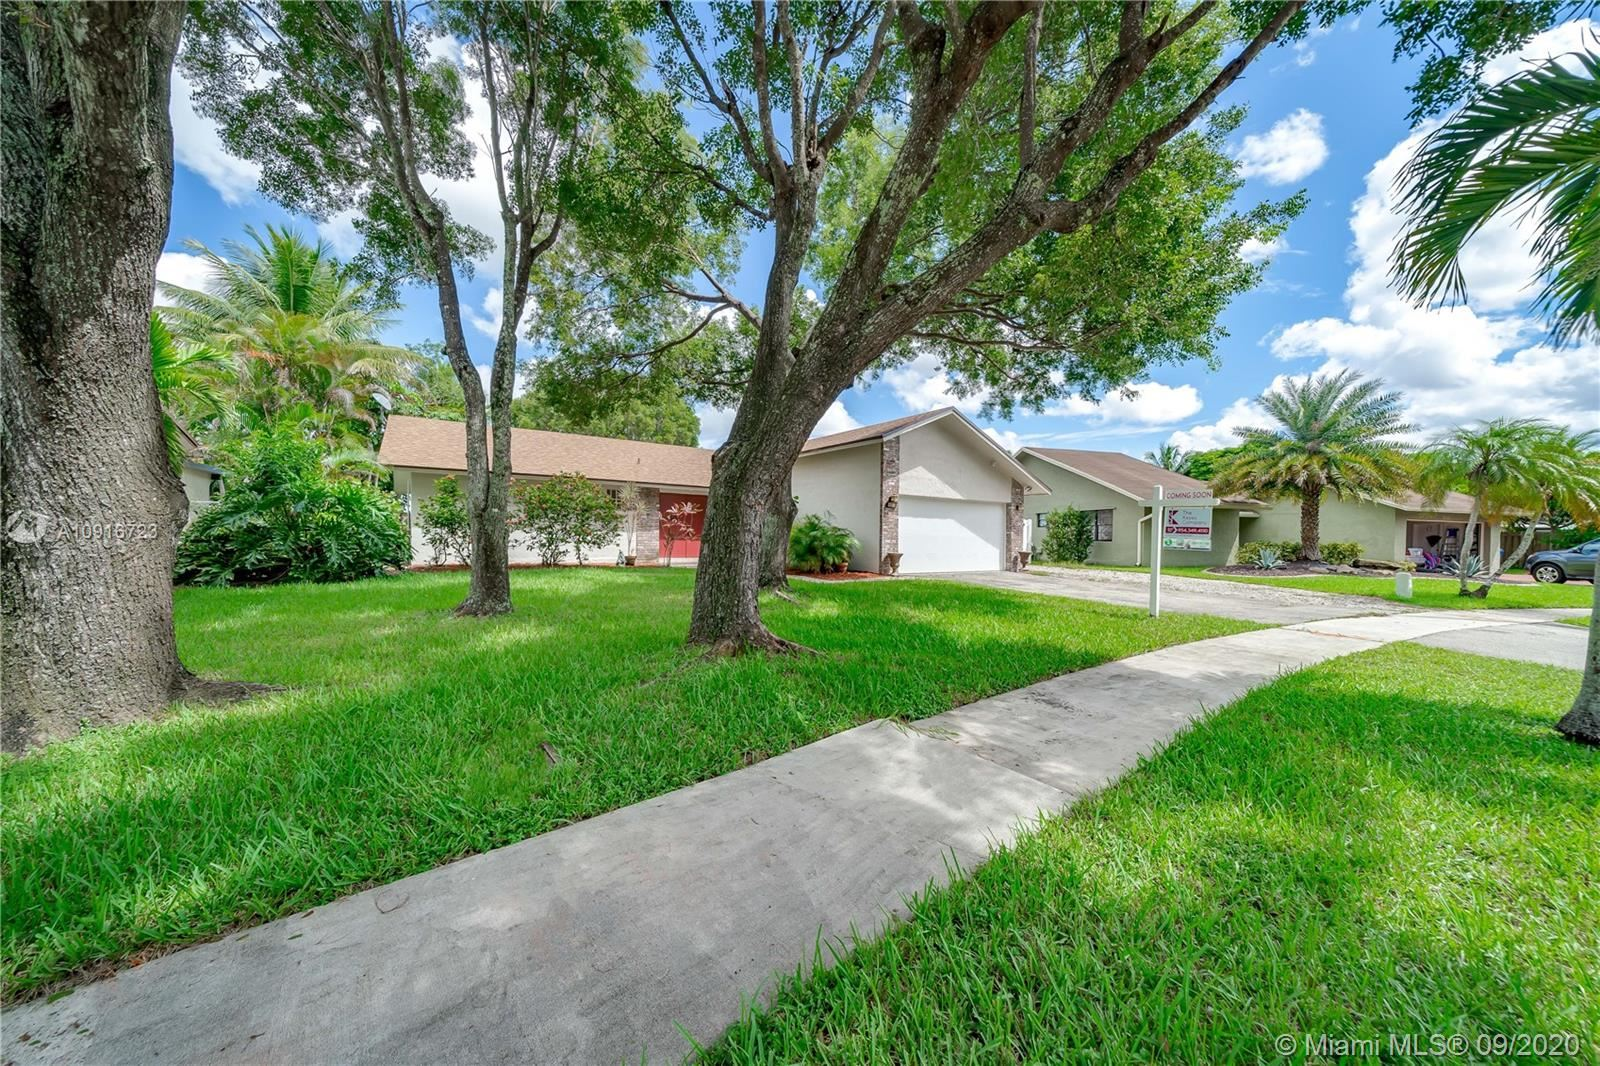 Photo of 4600 NW 93rd Ave, Sunrise, FL 33351 (MLS # A10916723)